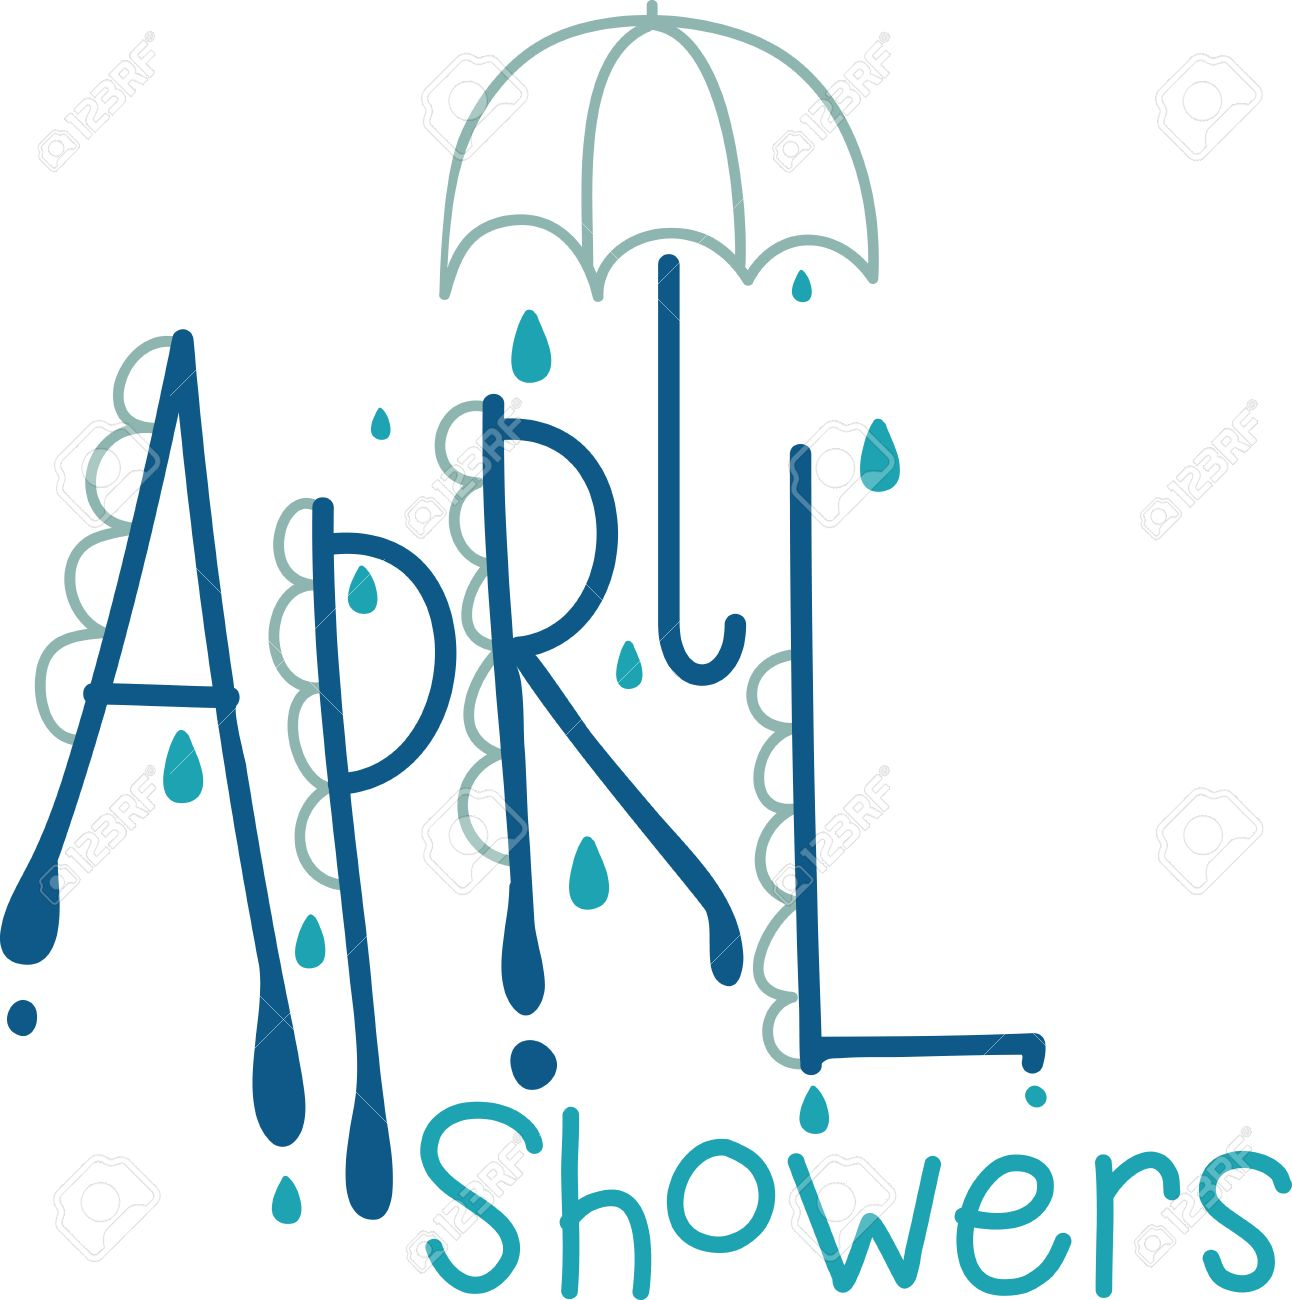 april shower